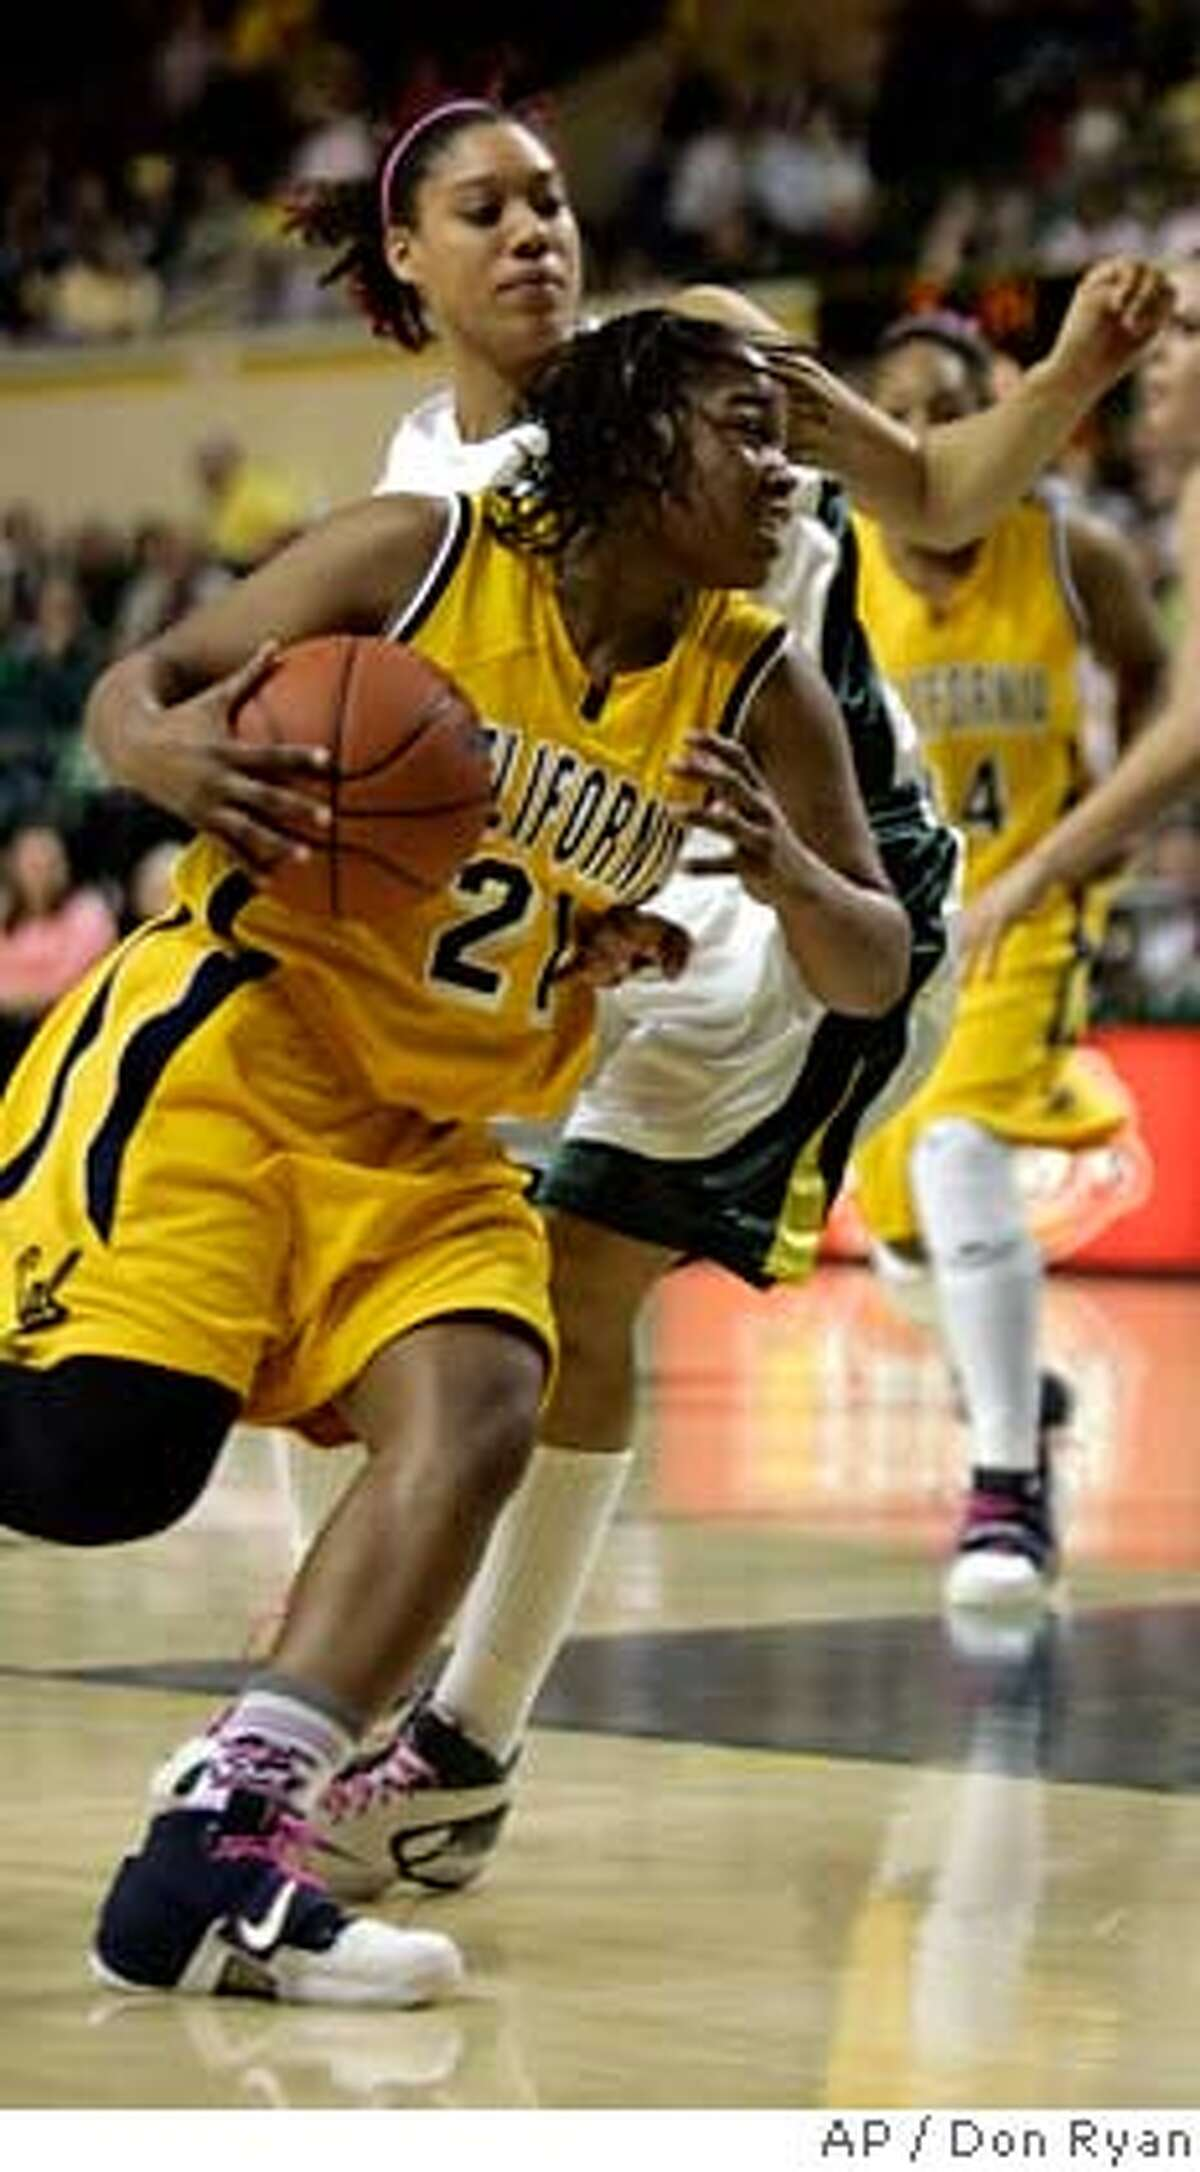 California guard Alexis Gray-Lawson (21) drives to the hoop against Oregon guard Tamika Nurse during second-half women's college basketball action in Eugene, Ore., Saturday, Feb. 9, 2008. Gray-Lawson led California with 16 points to beat Oregon, 53-34.(AP Photo/Don Ryan) EFE OUT